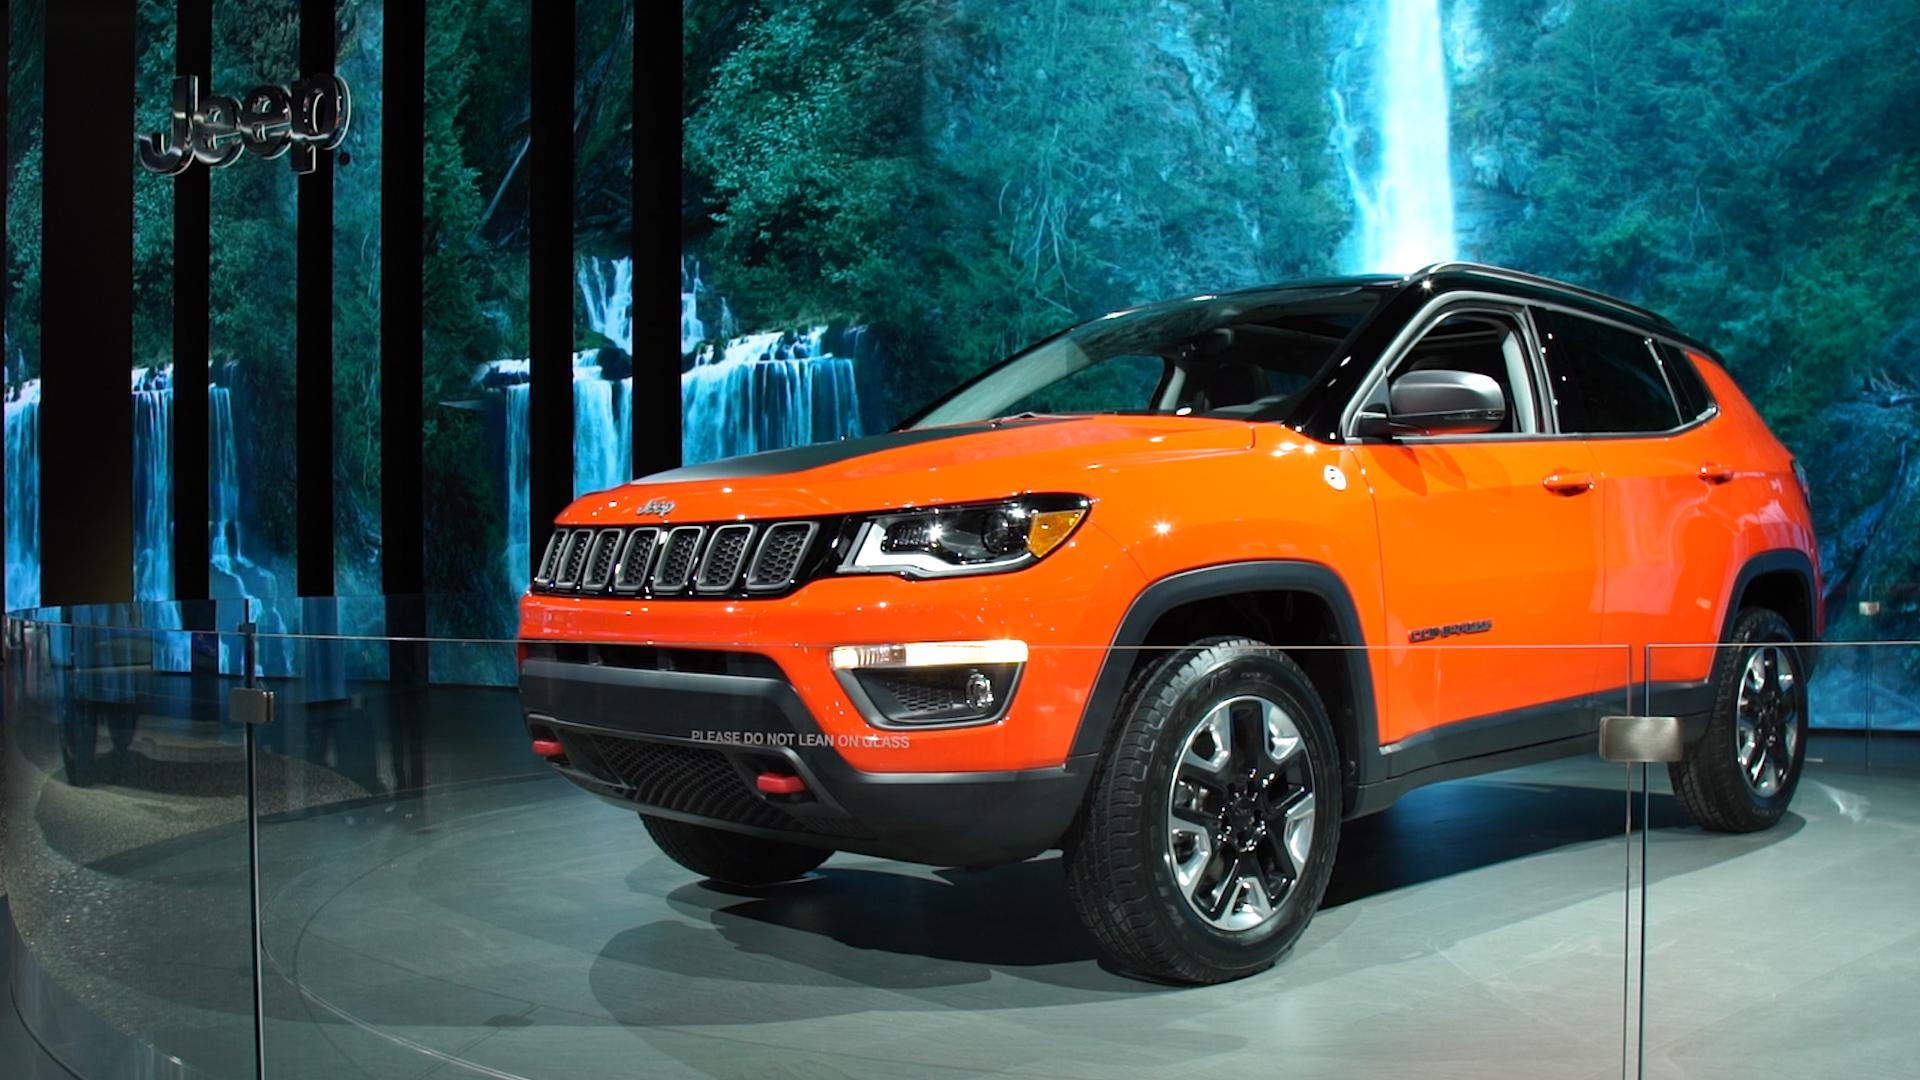 Previously lost suv tries to find its bearings with iconic looks off road cred